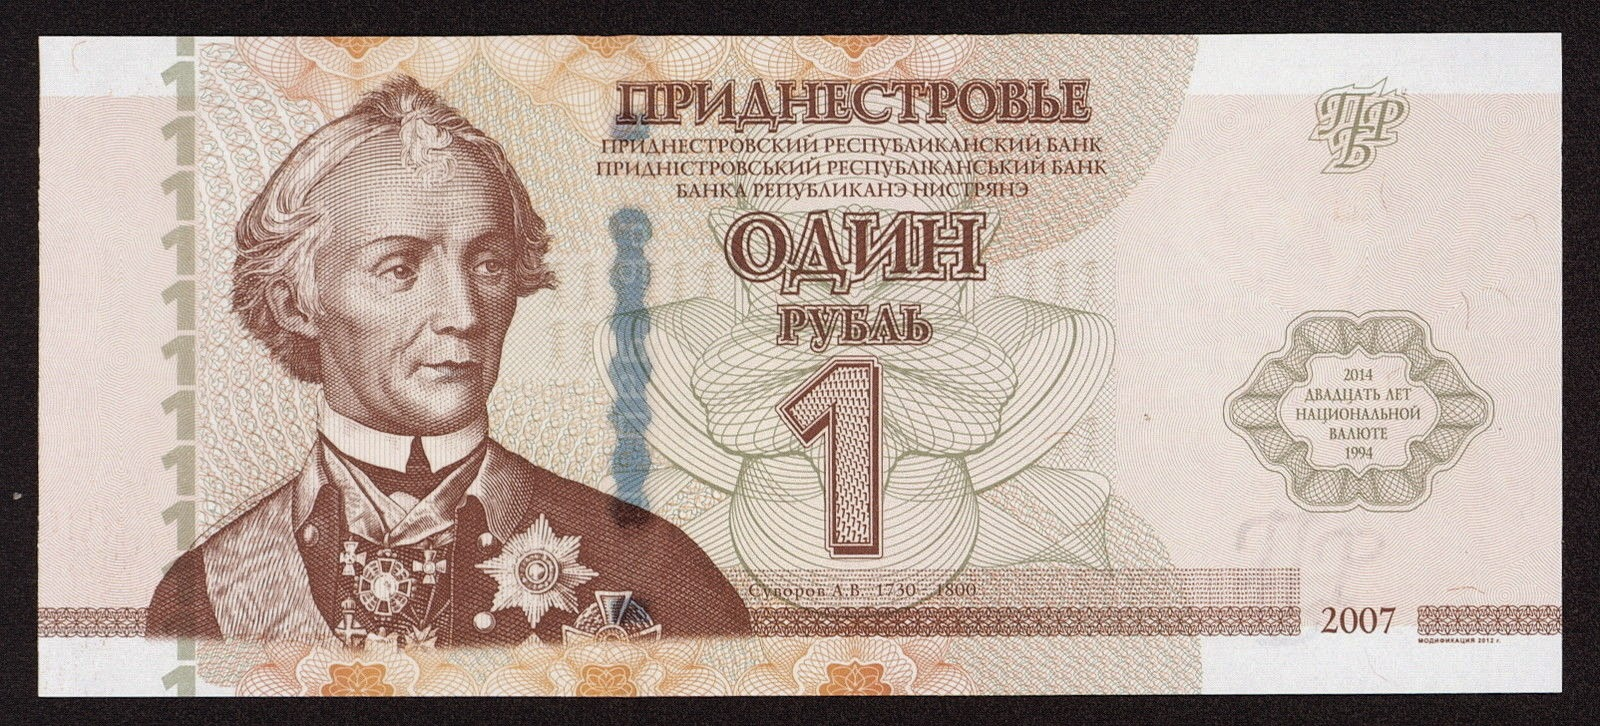 Banknotes and coins of Transnistria. Interesting facts about the currency of the PMR 30